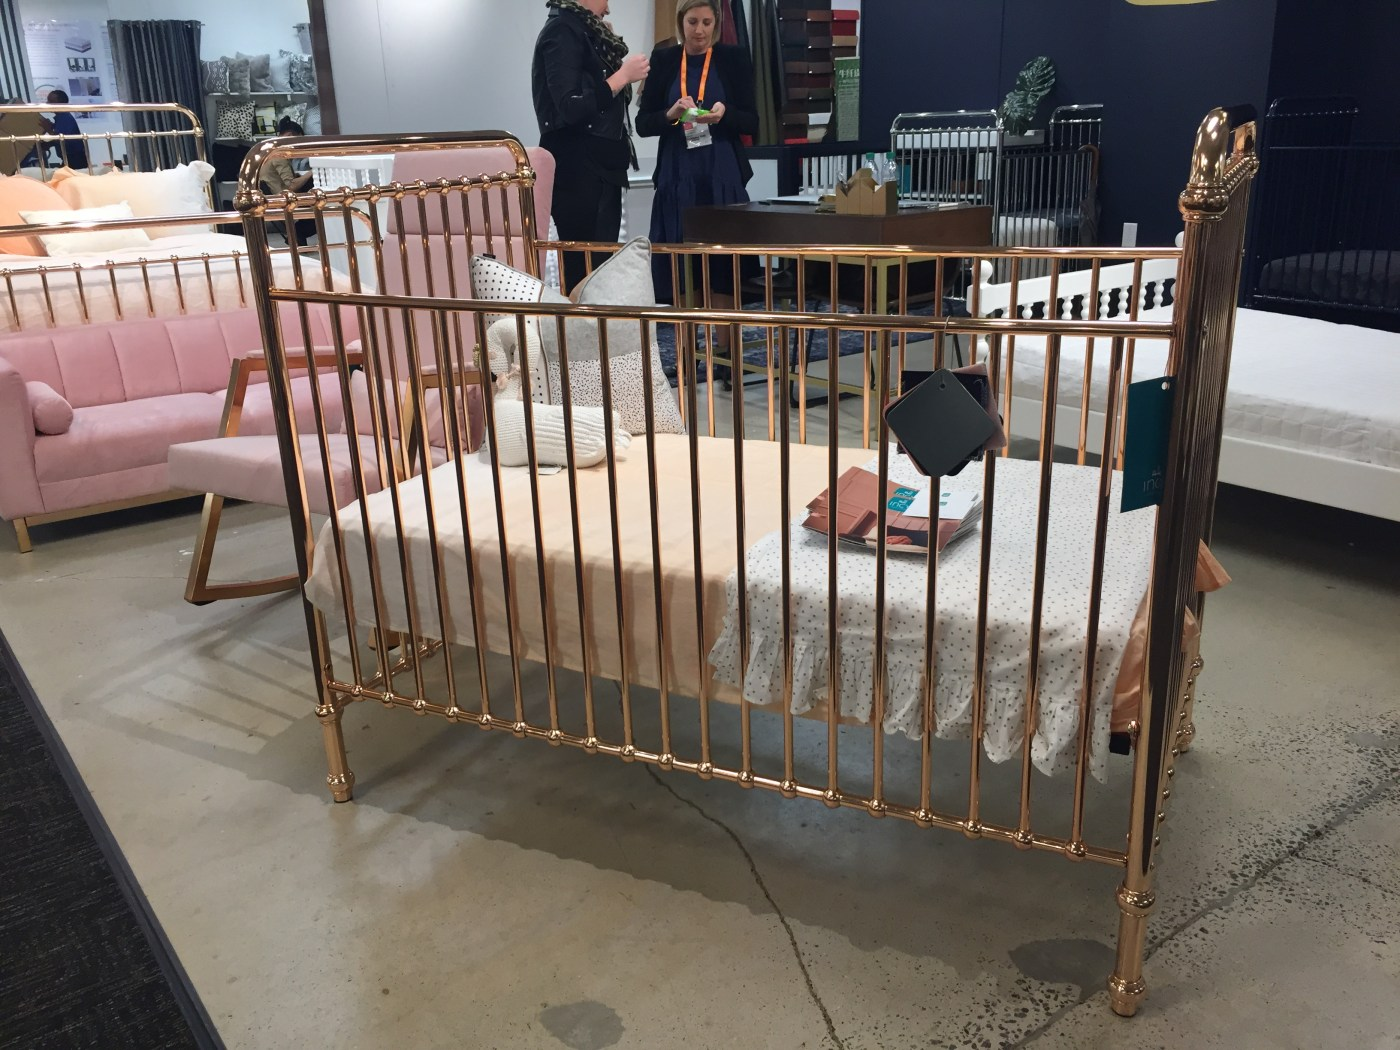 Friday Family-Friendly Find: Incy Metal Cribs   Interiors for Families